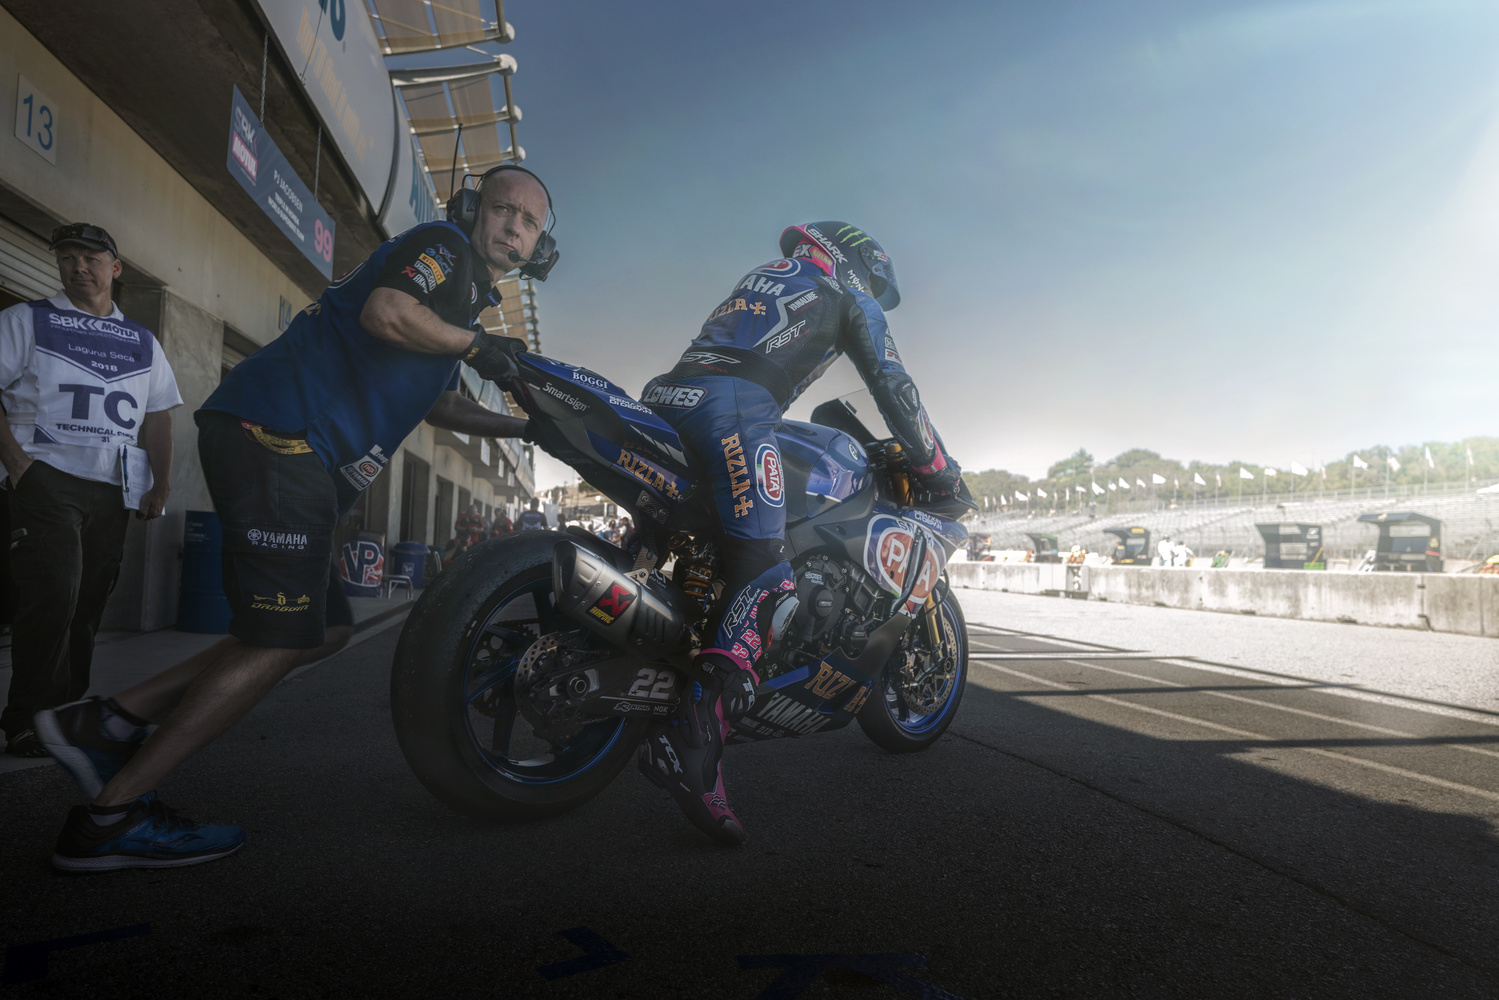 Alex Lowes Pata Yamaha World SBK by Zachary Bolena